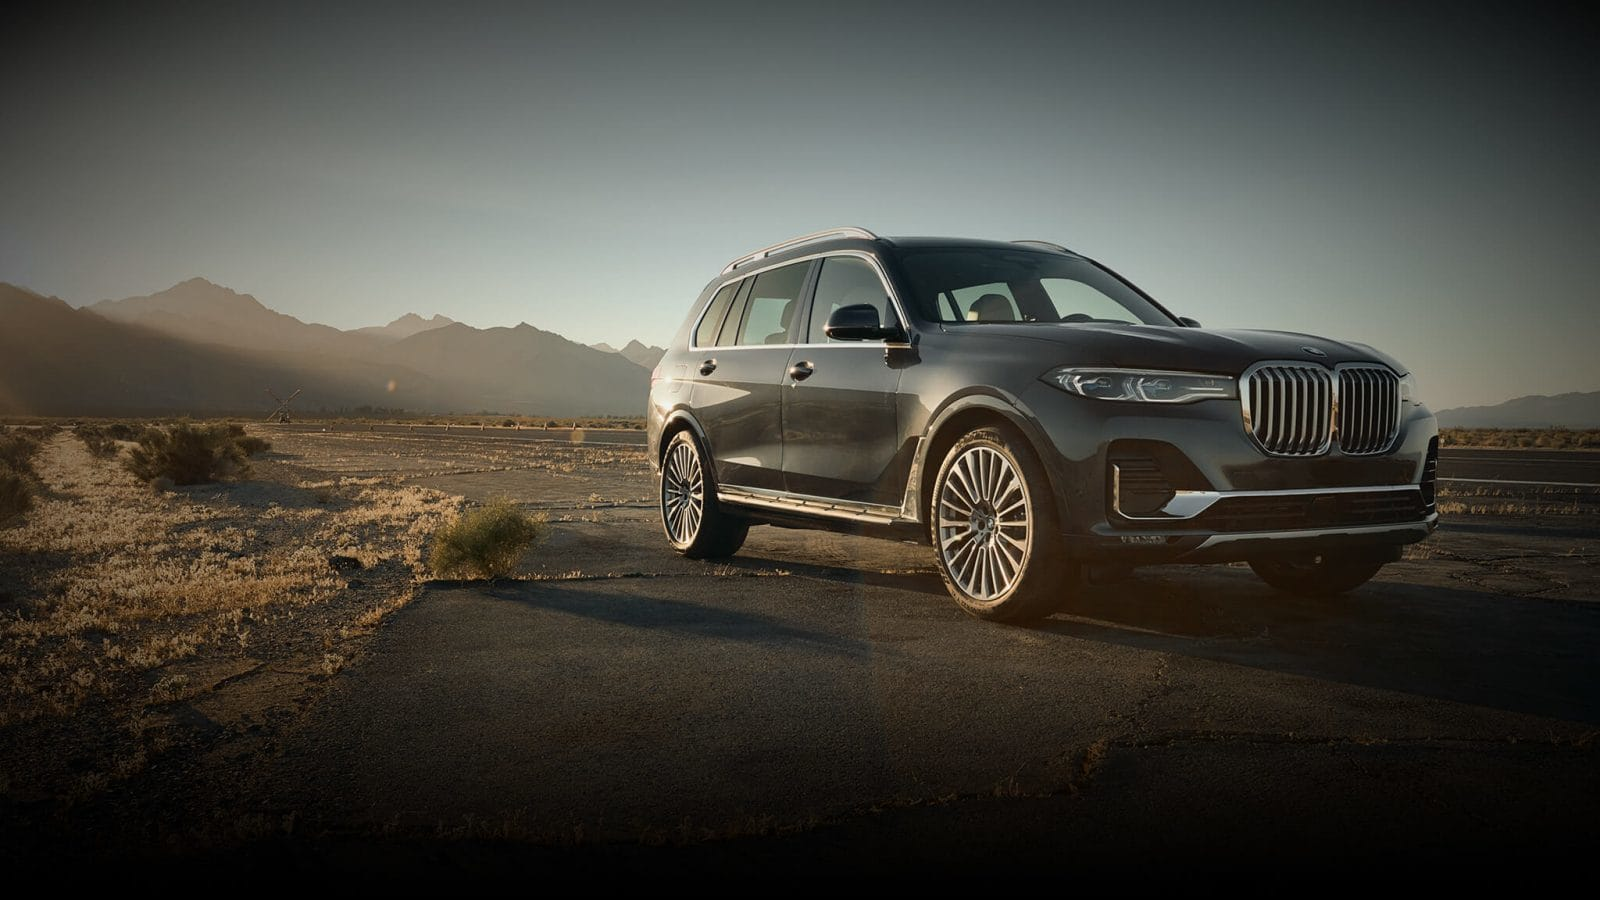 2019 BMW X7 Black Exterior Front View Picture